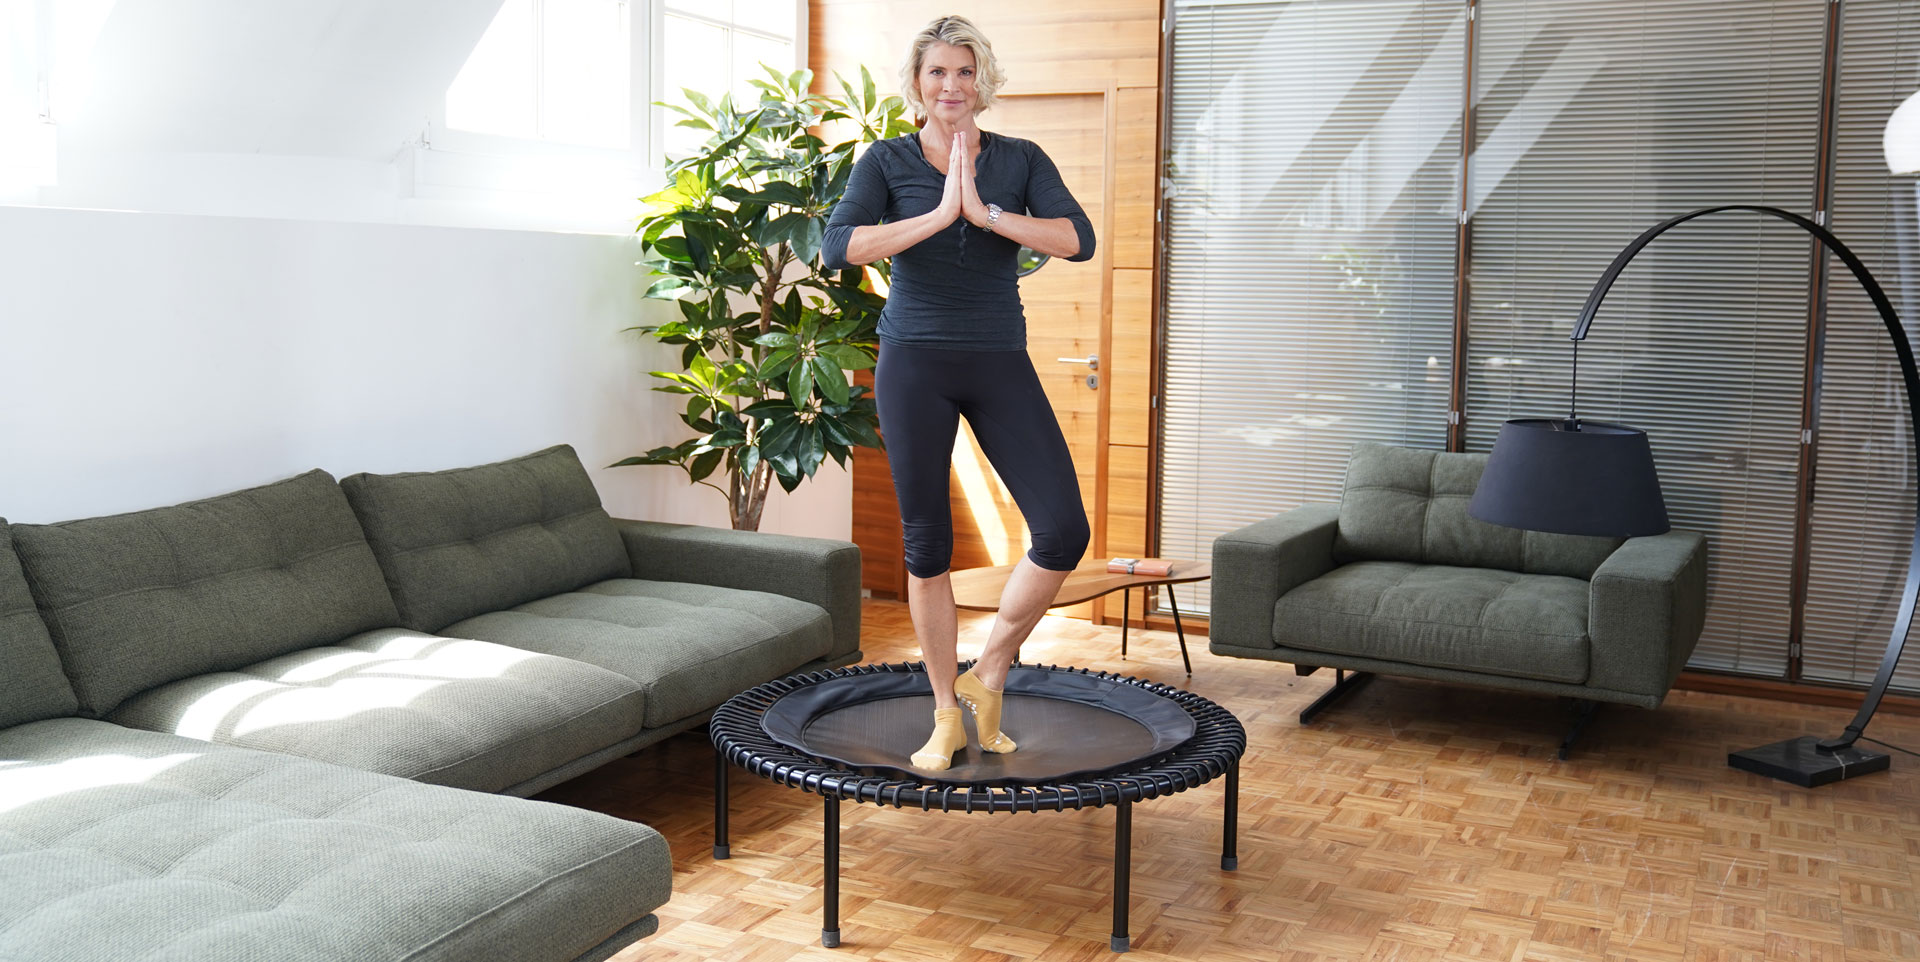 Woman on mini trampoline